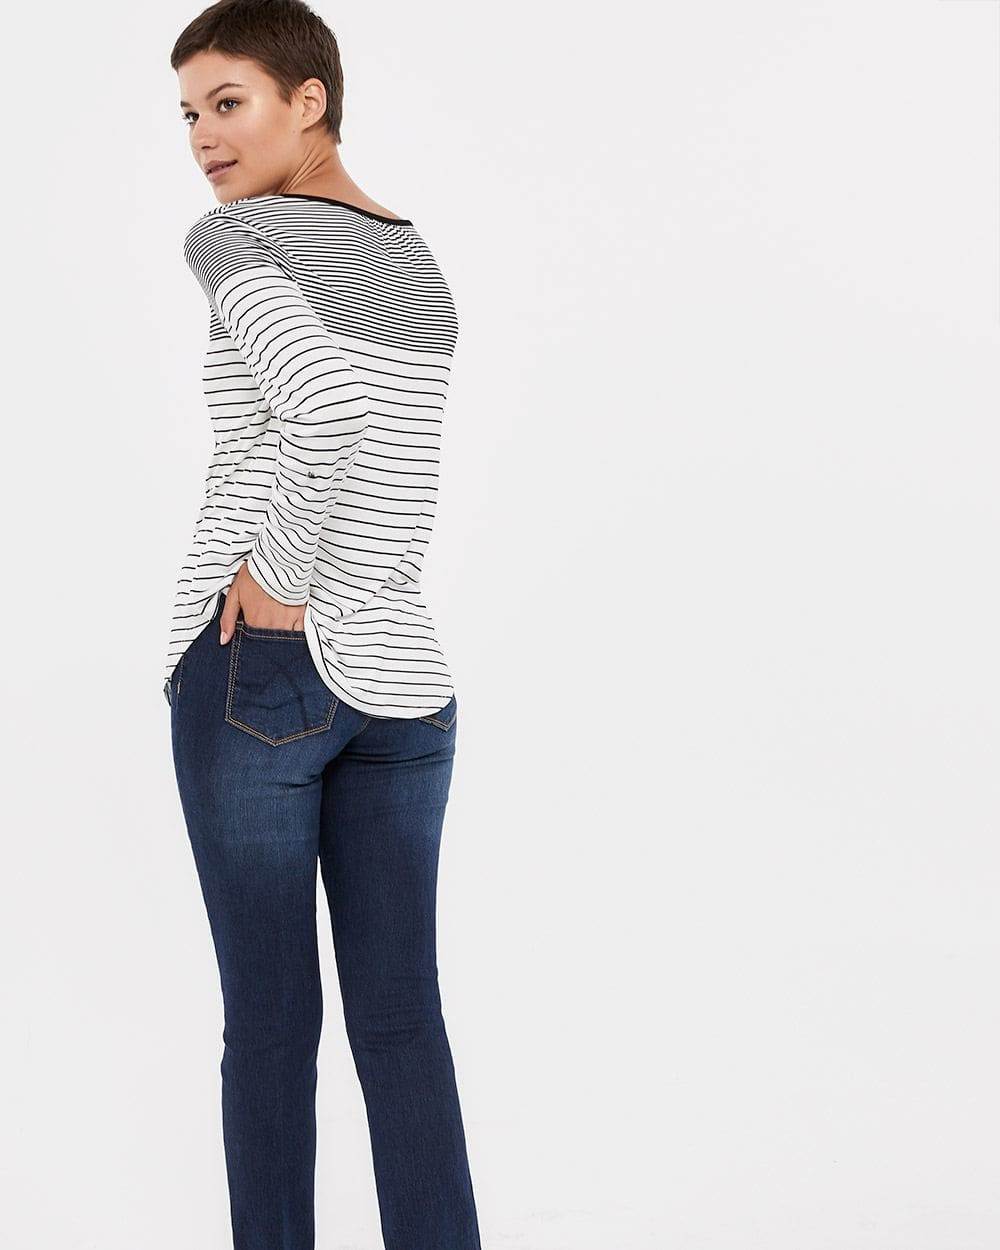 Roll-Up ¾ Sleeve Printed Top